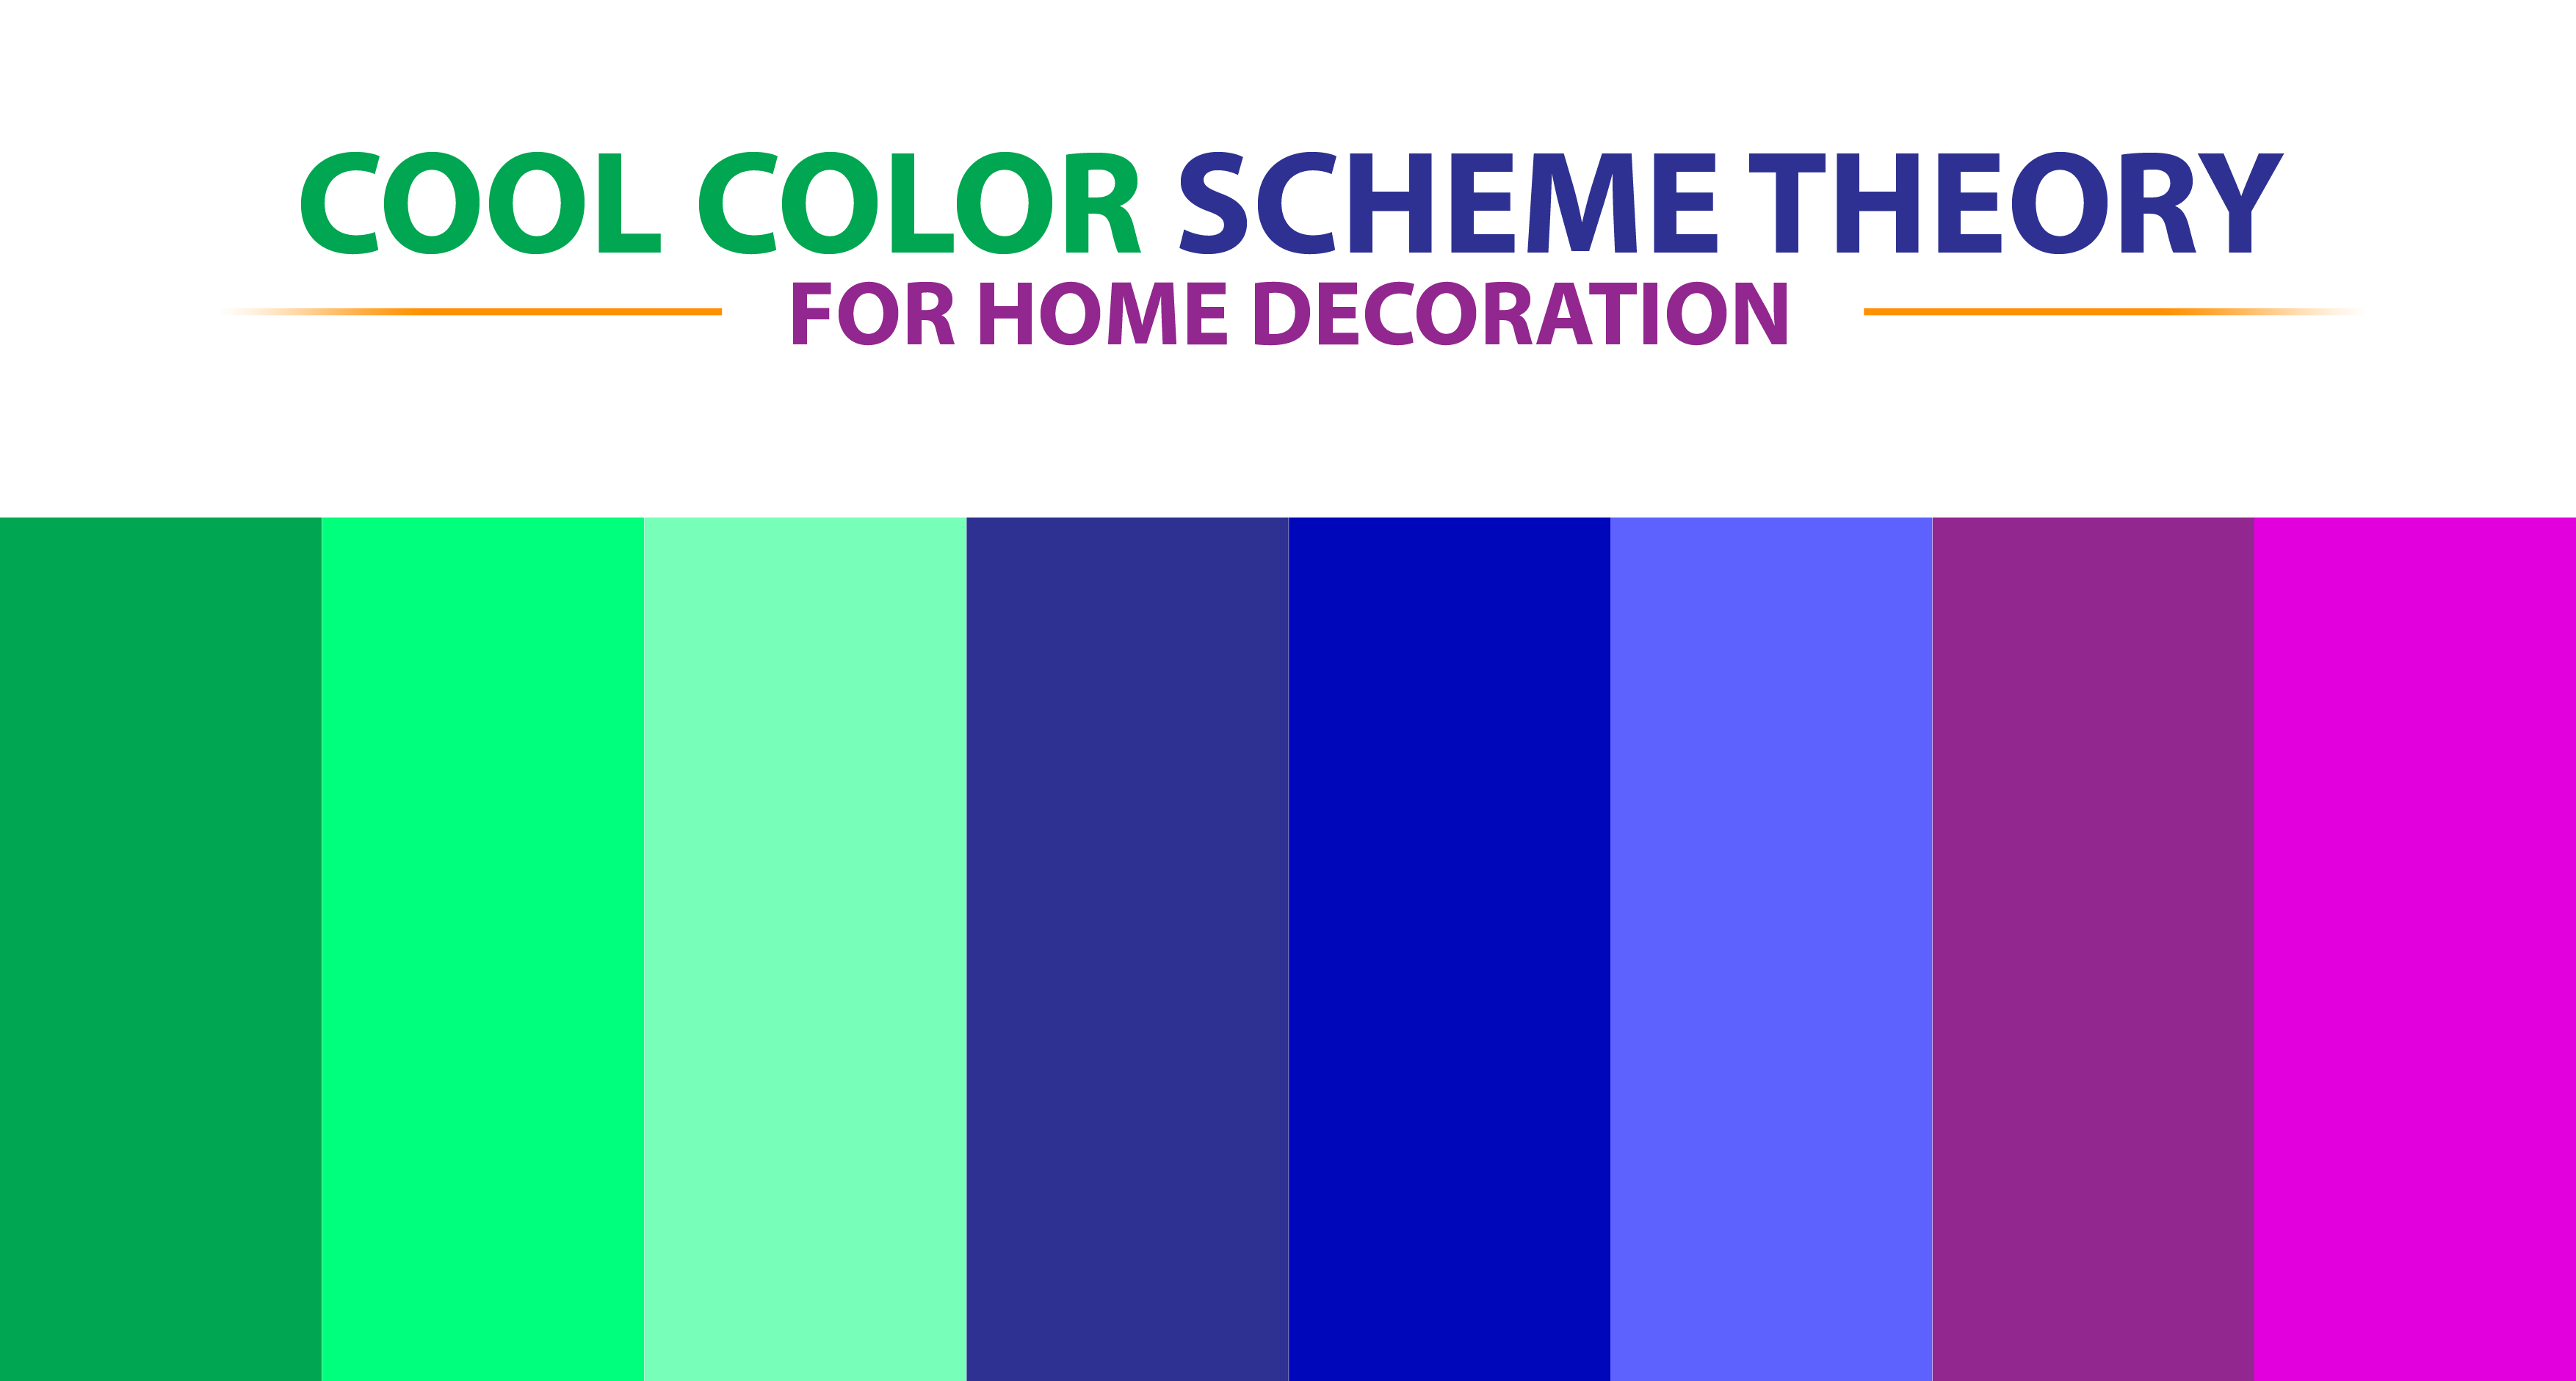 Cool color scheme theory for home decoration to combine matching color palette from the colour wheel design for best color combinations